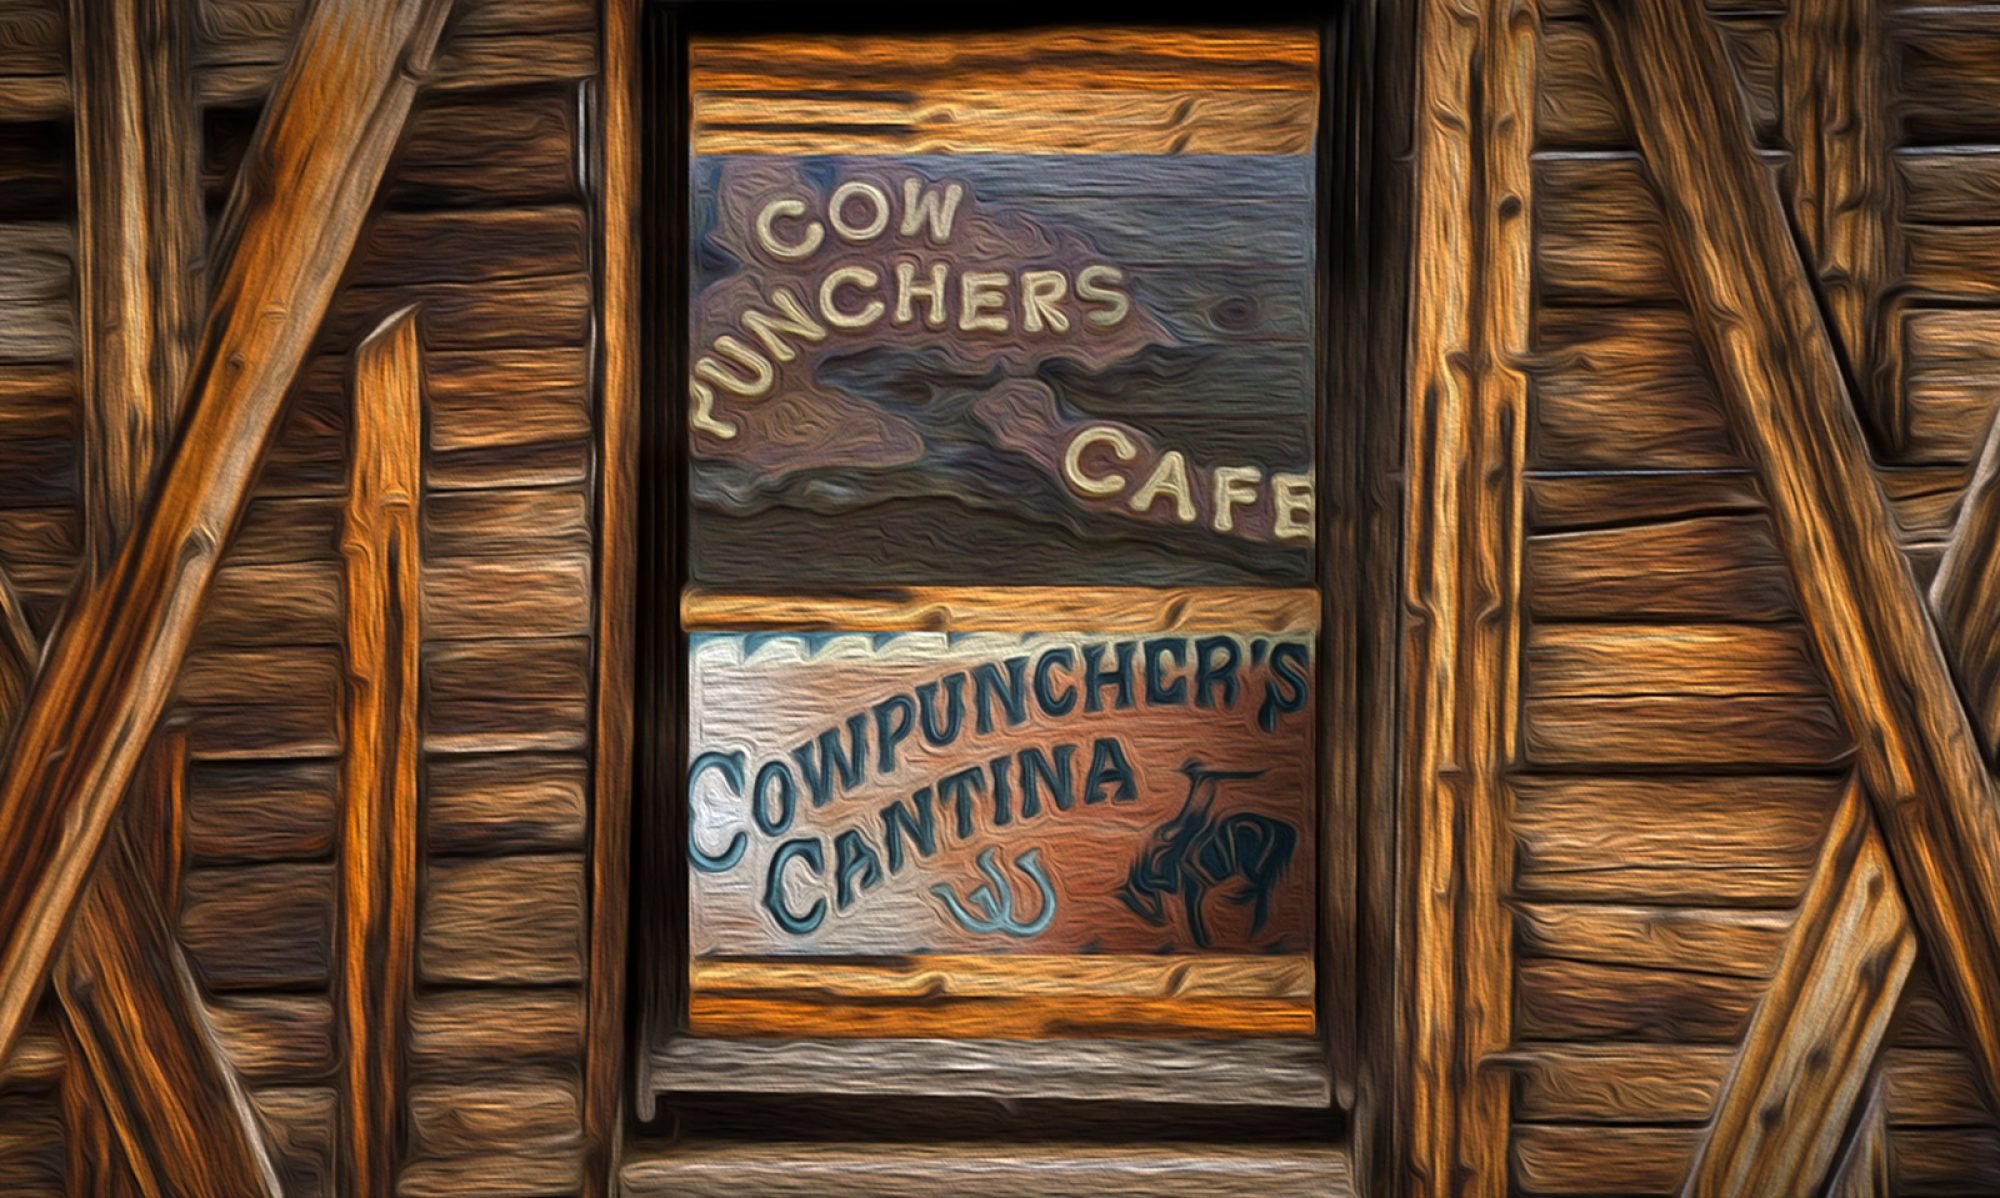 Cowpunchers Cafe & Catering